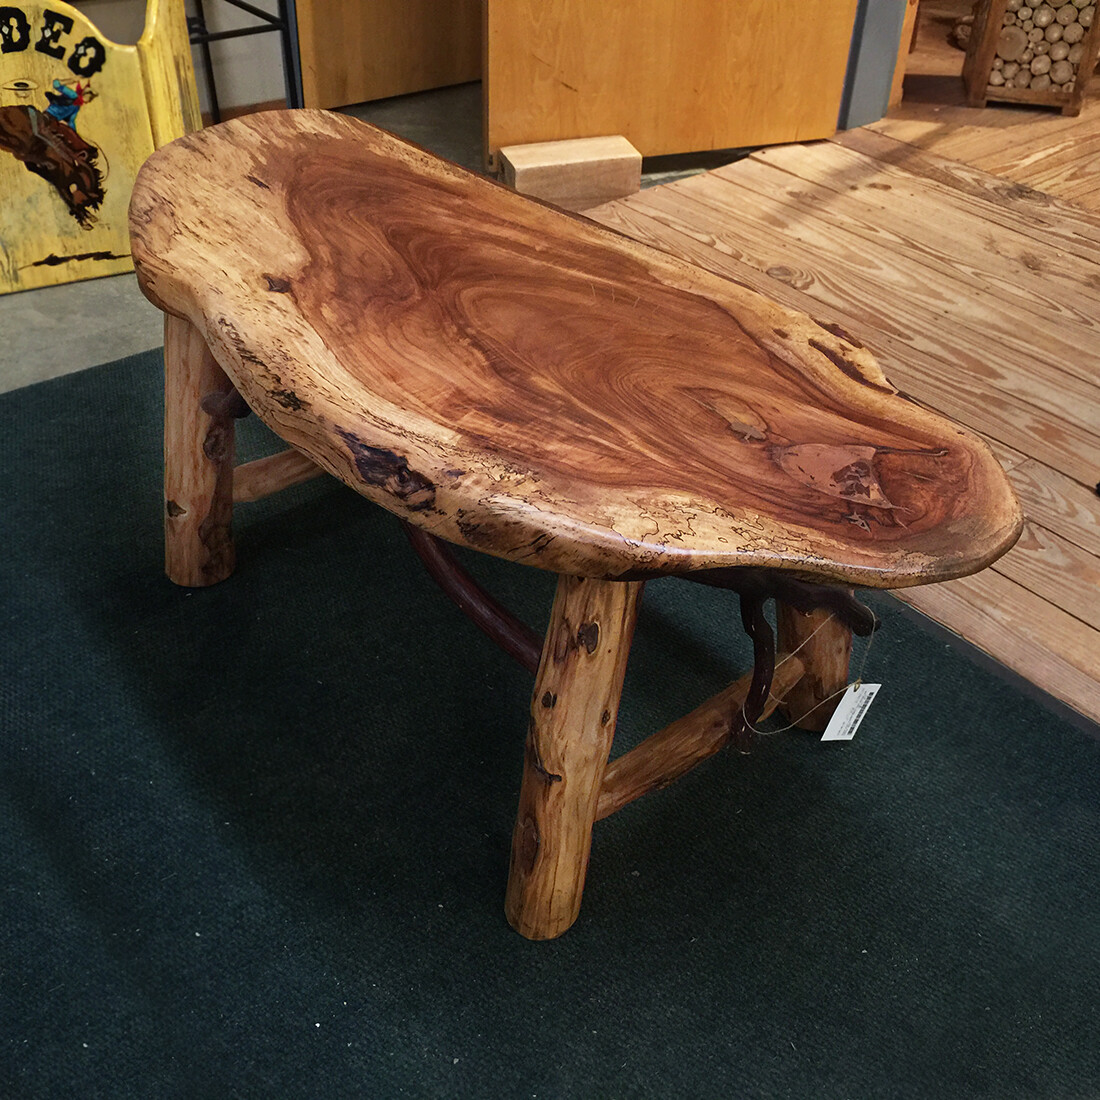 Pecan Slab Coffee Table with Locust and Laurel Base